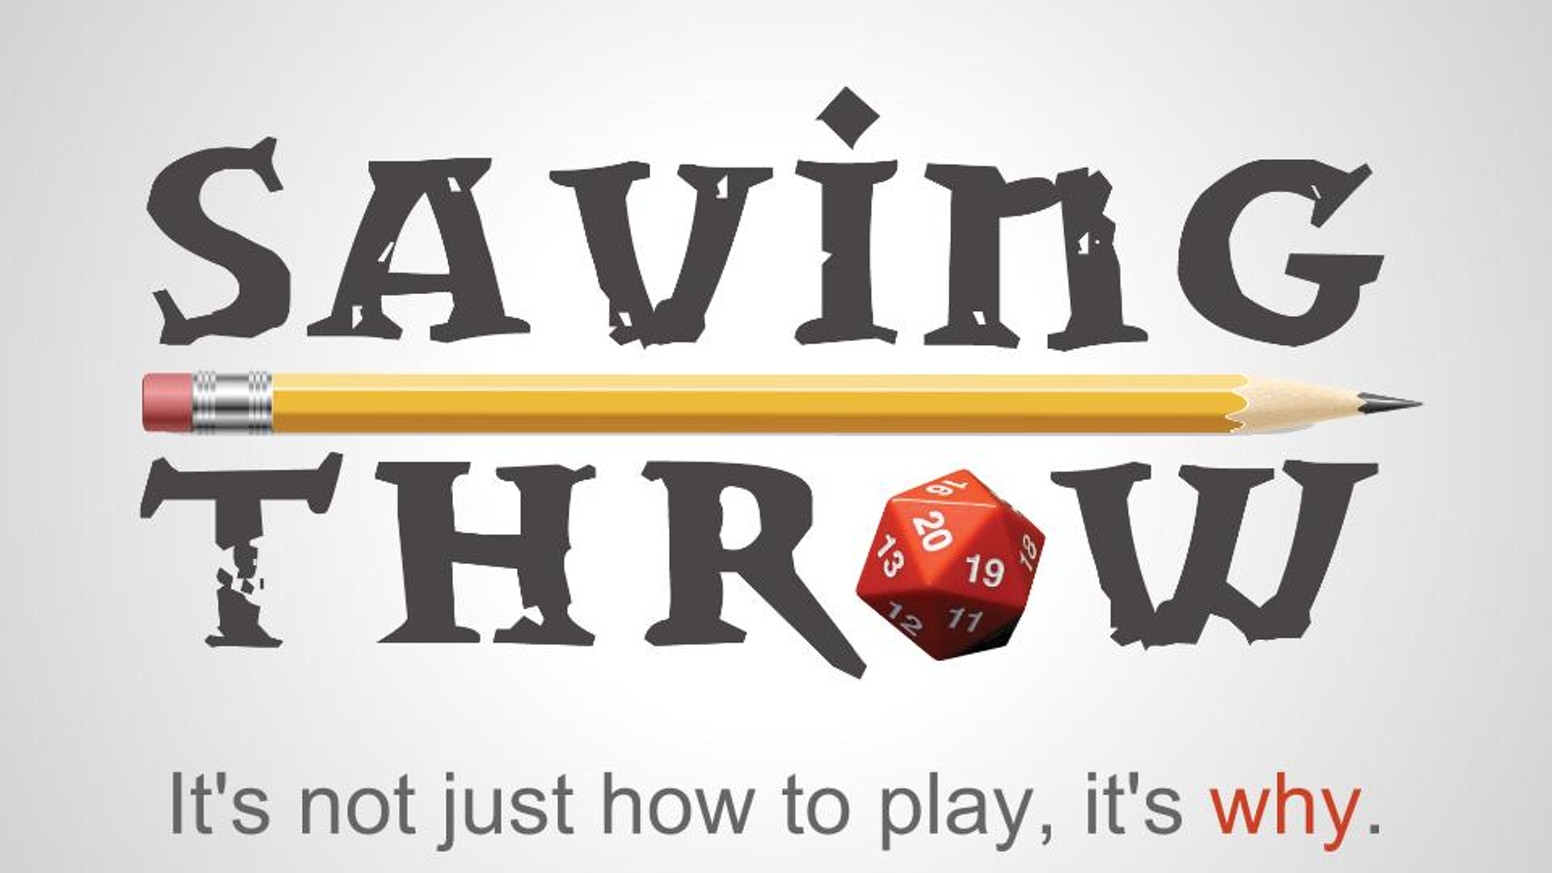 With your help we made Saving Throw. A one-stop YouTube channel devoted to RPGs, and taught Pathfinder. Thank you!